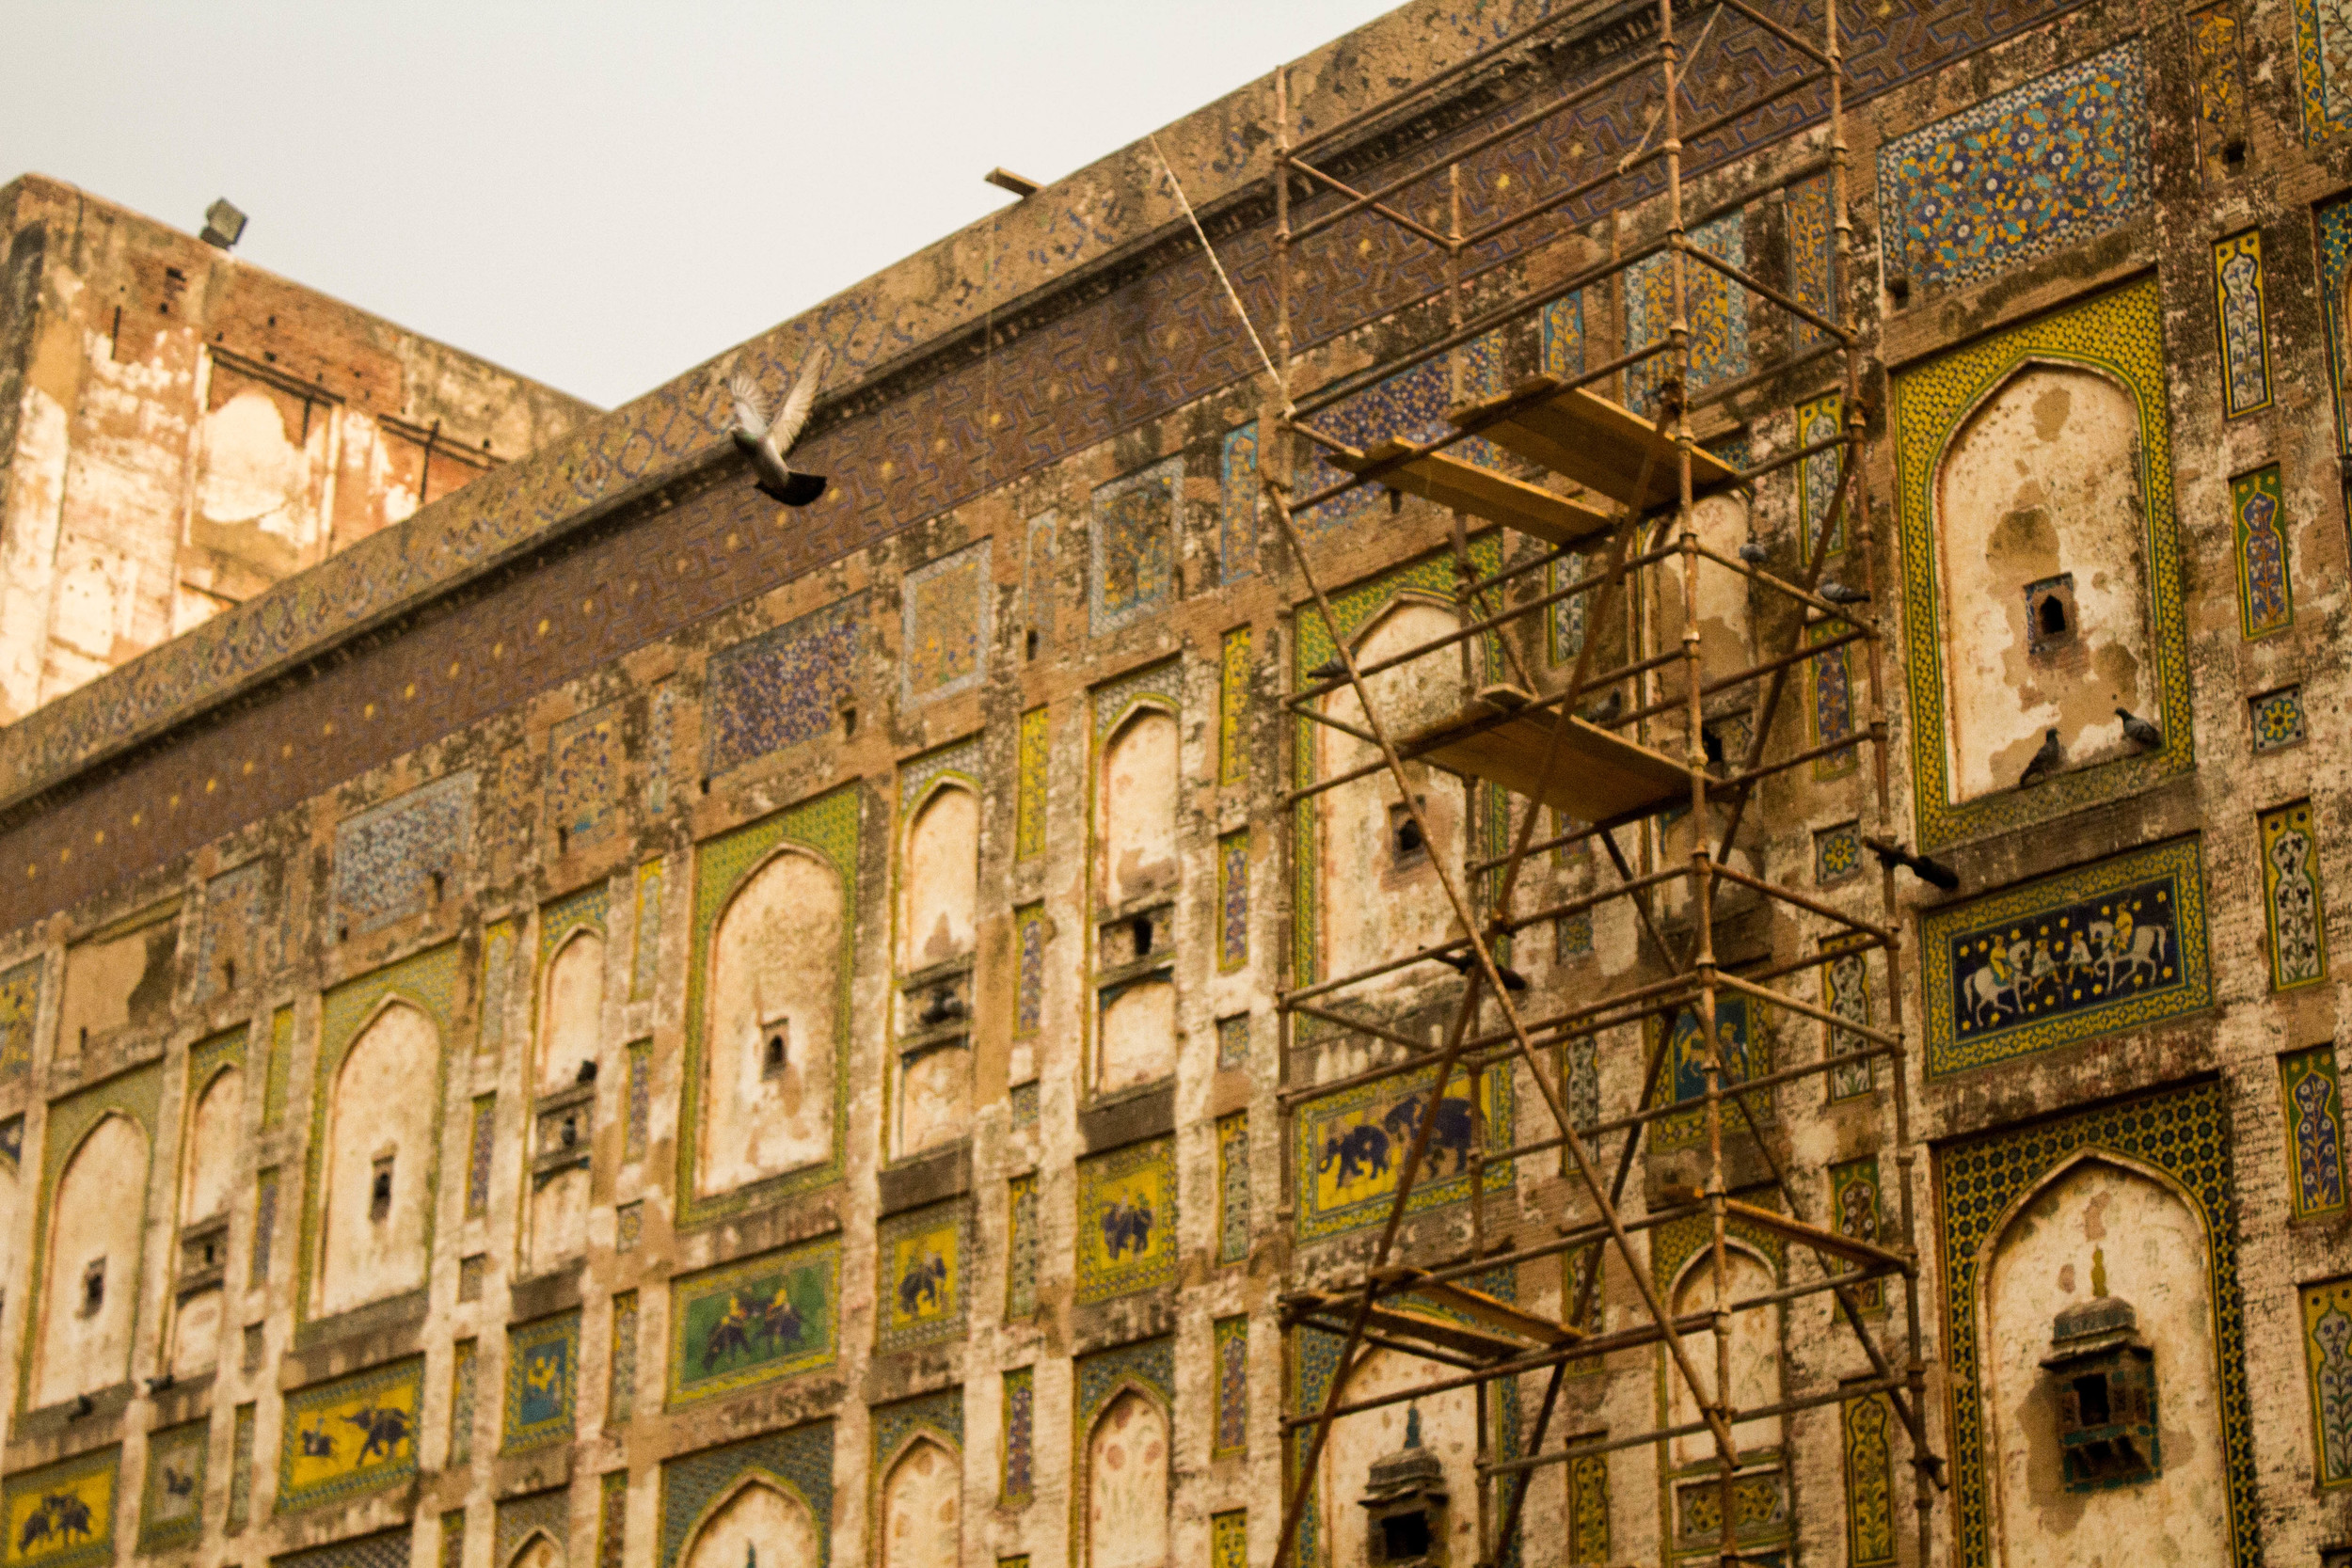 Restoration of mosaic and mural work is being undertaken in Old Lahore by European embassies, the Aga Khan Foundation, UNESCO, and other groups.